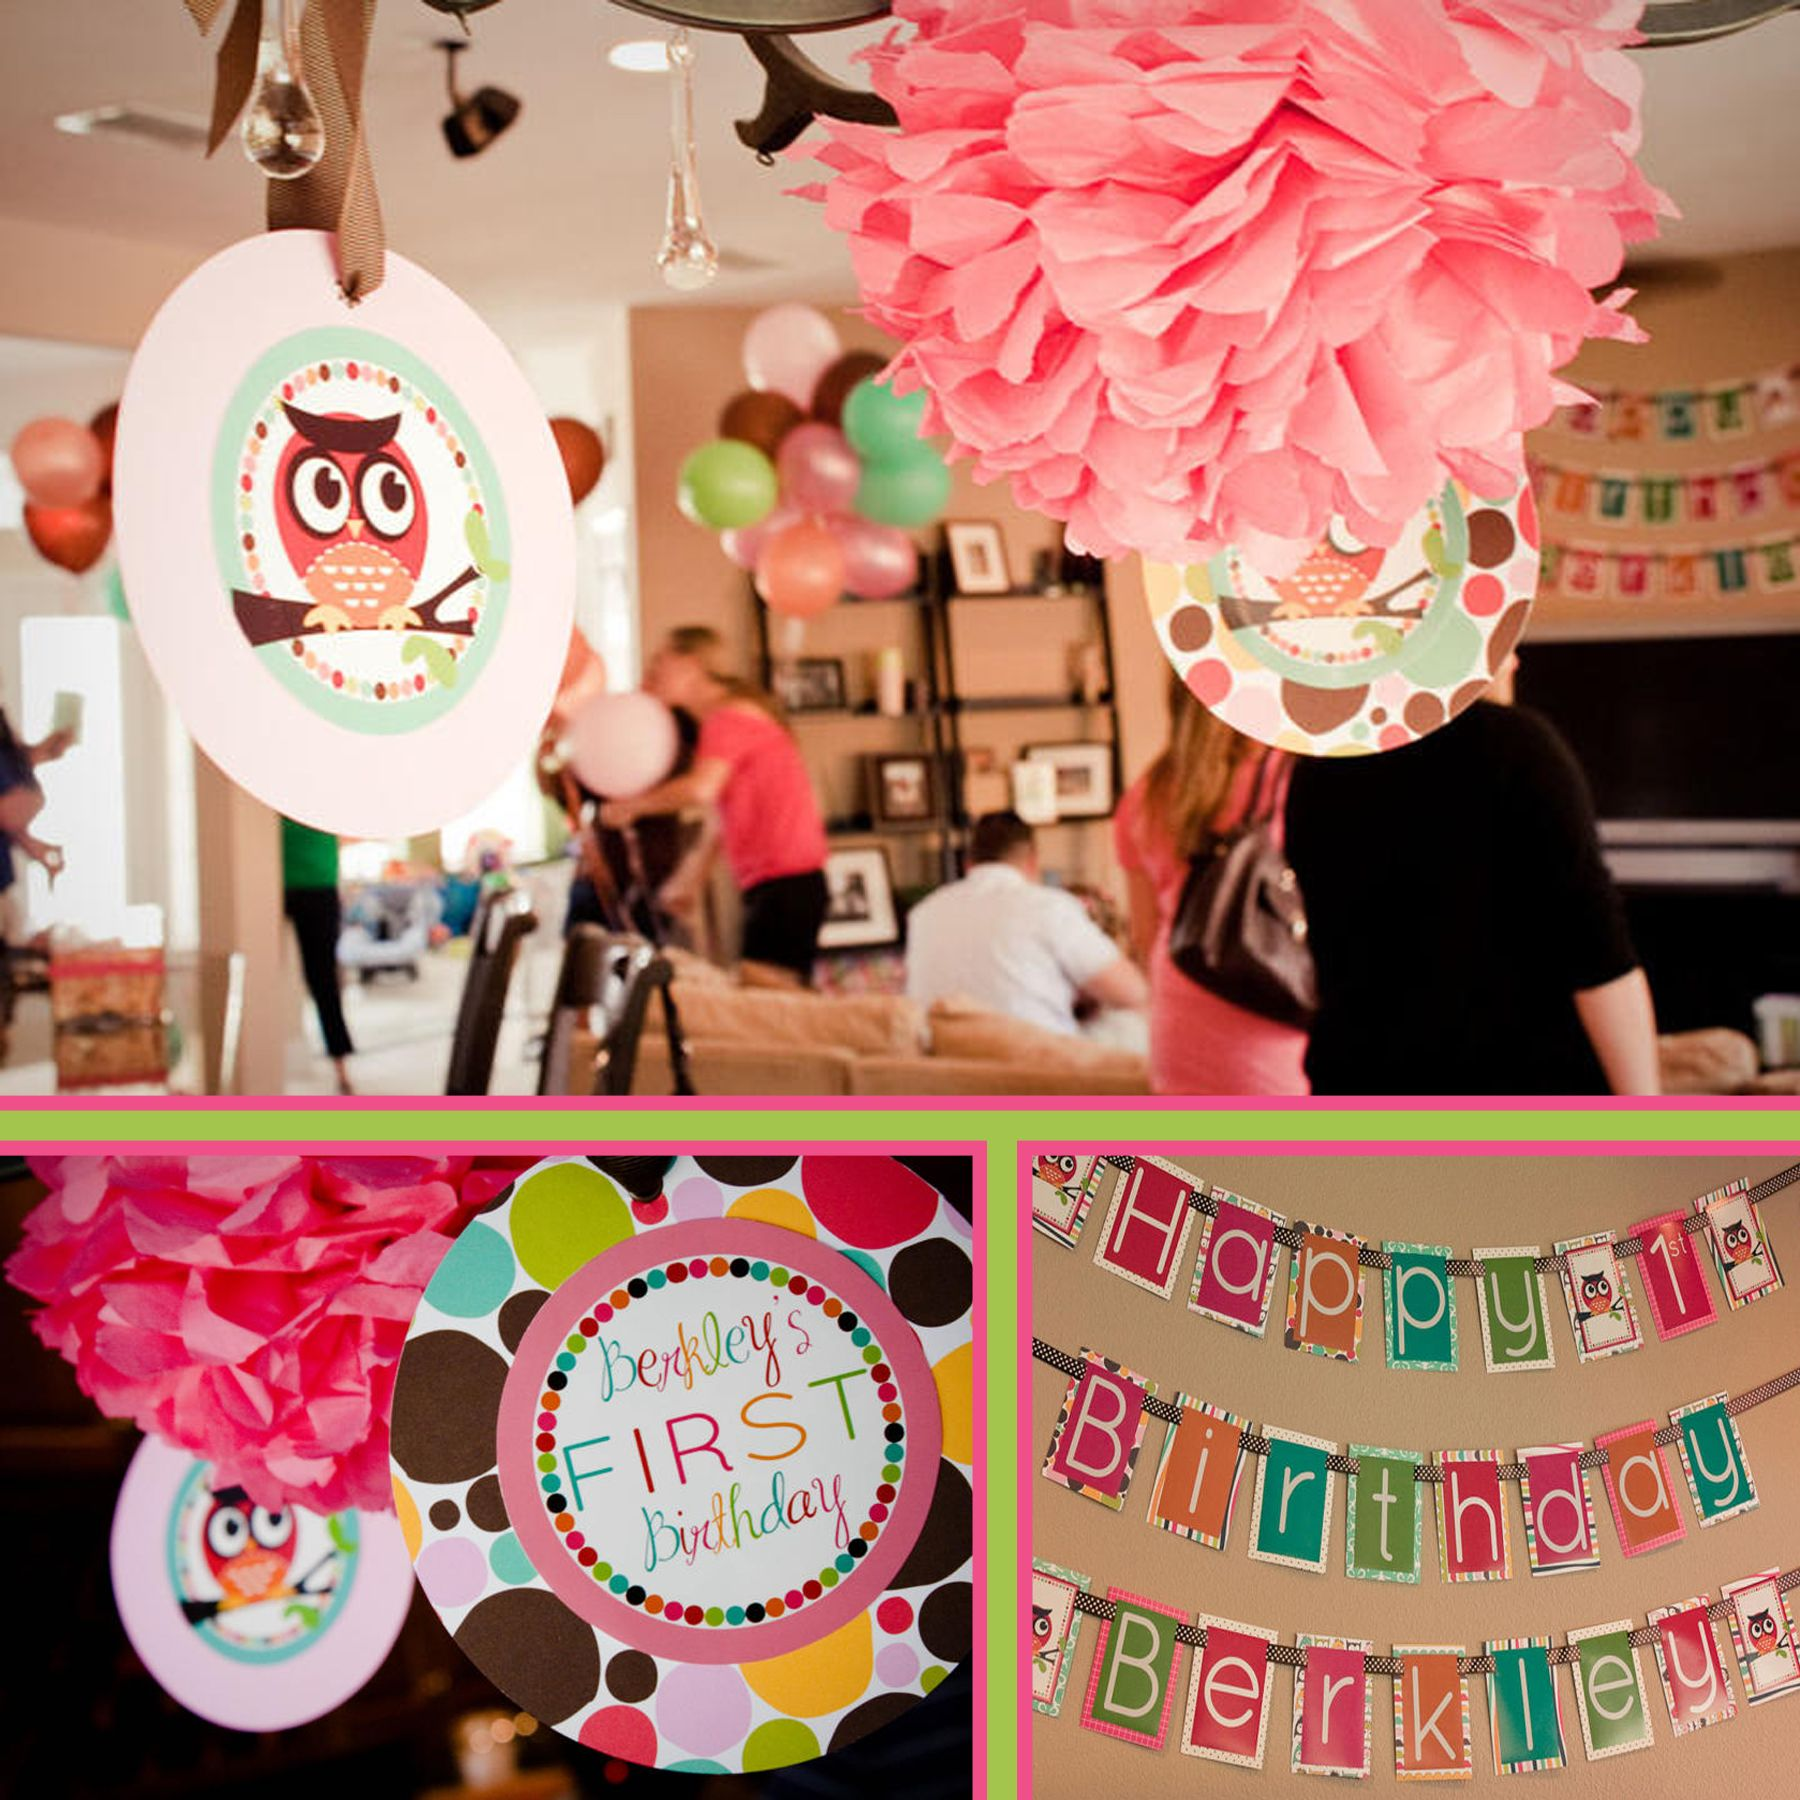 Decoration Stuff For Party Owl Birthday Decorations 1st Birthday Ideas Pinterest